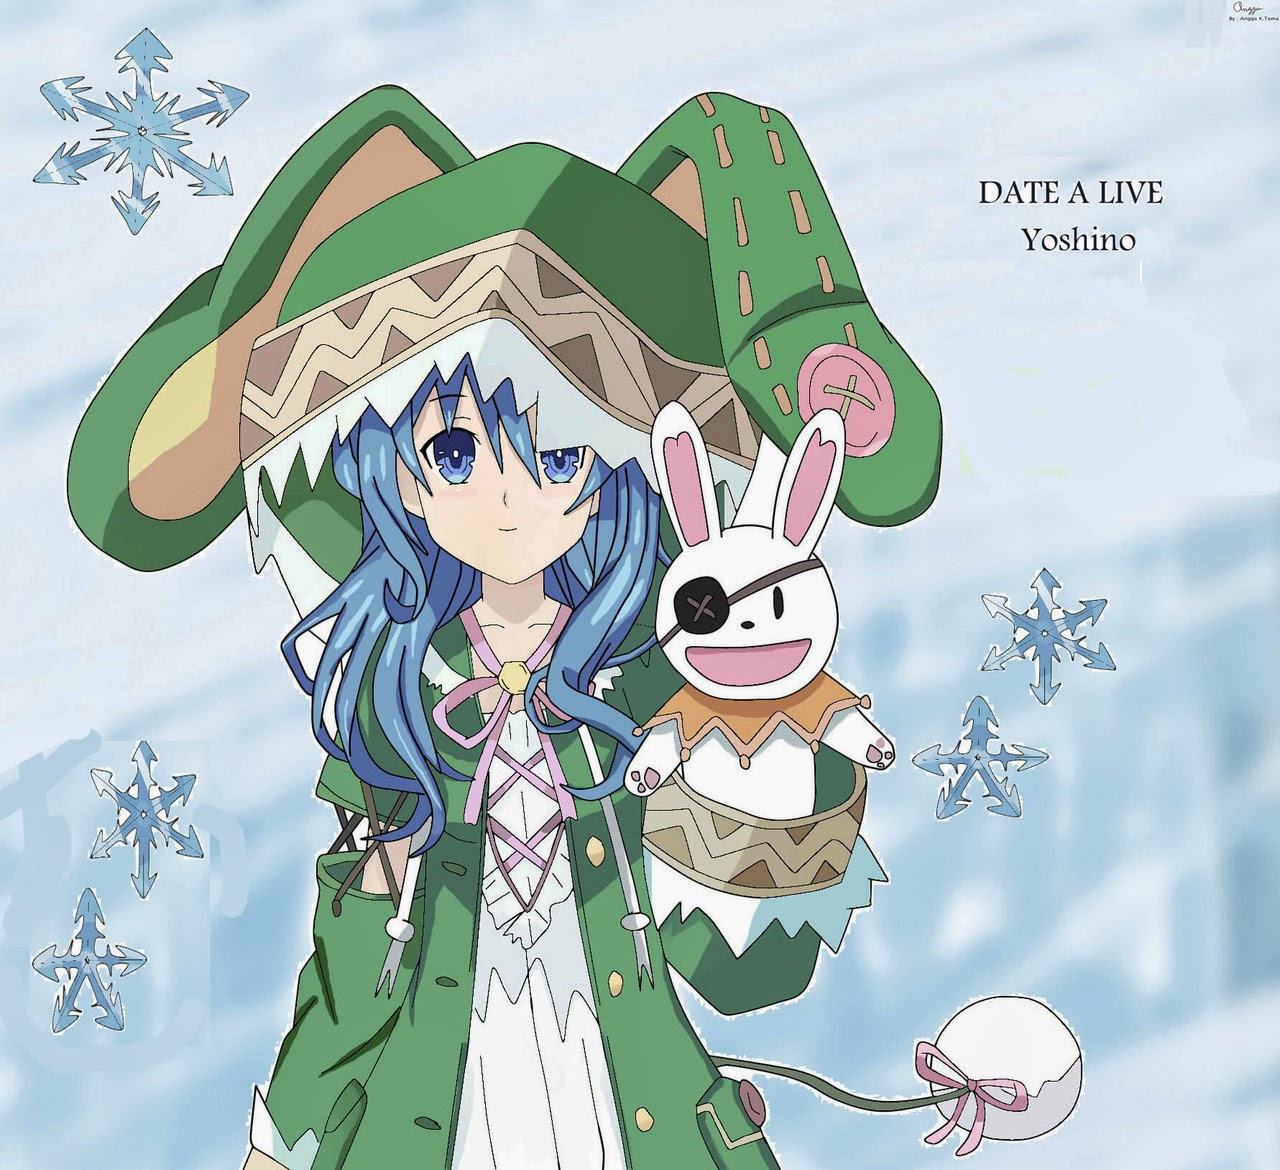 Wallpaper Yoshino DATE A LIVE